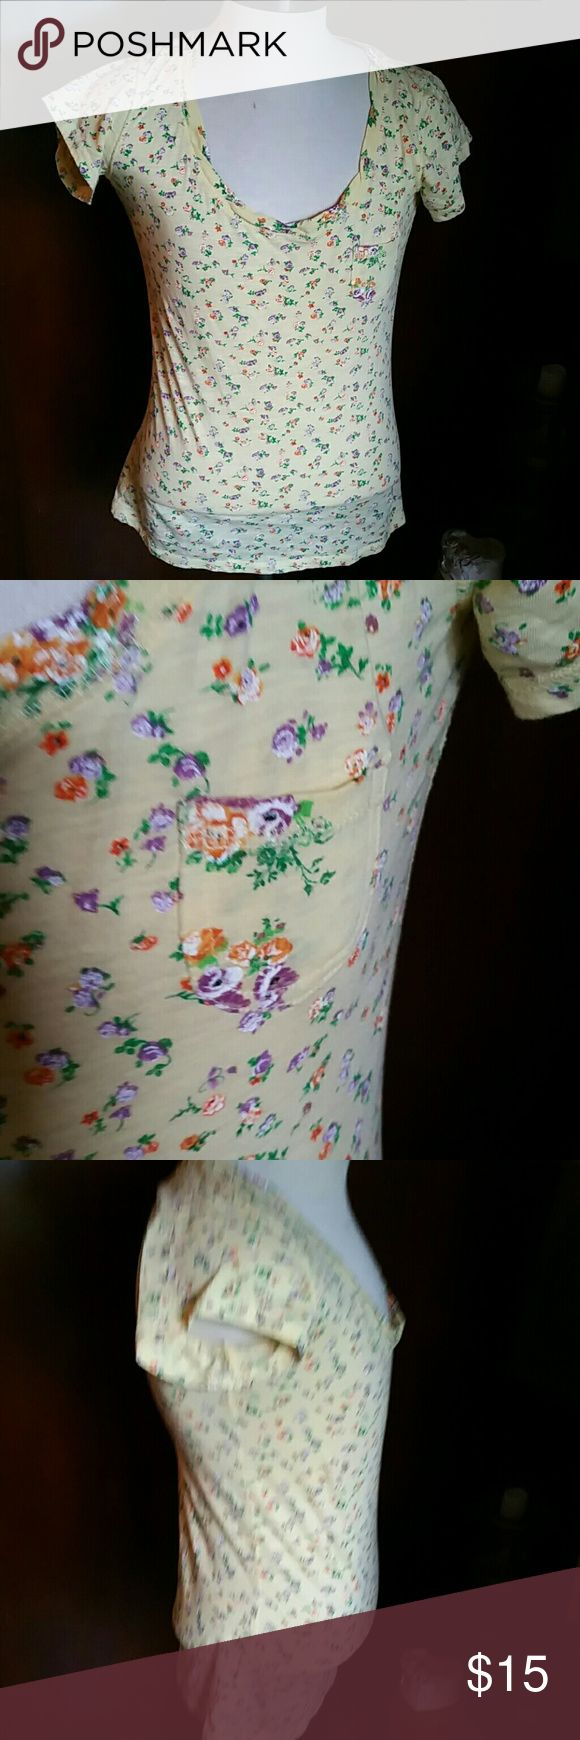 BNWOT- RUE 21- yellow floral top How cute for the summer Longer top Vneck Capped…